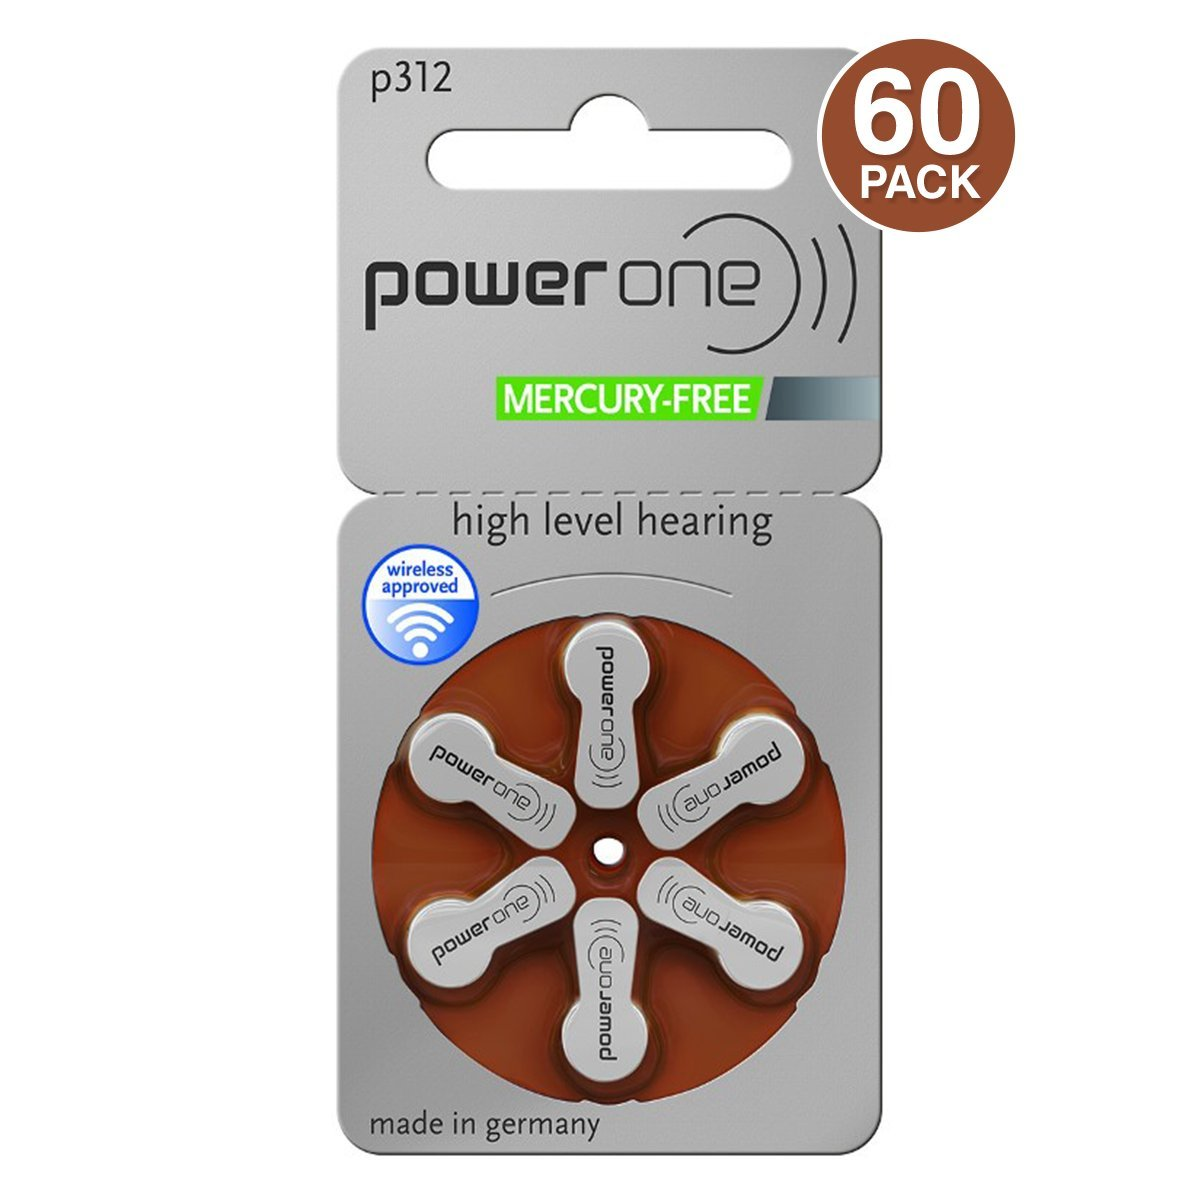 Power One p312 oJxOAM Hearing Aid Battery, 60 Count (4 Units)